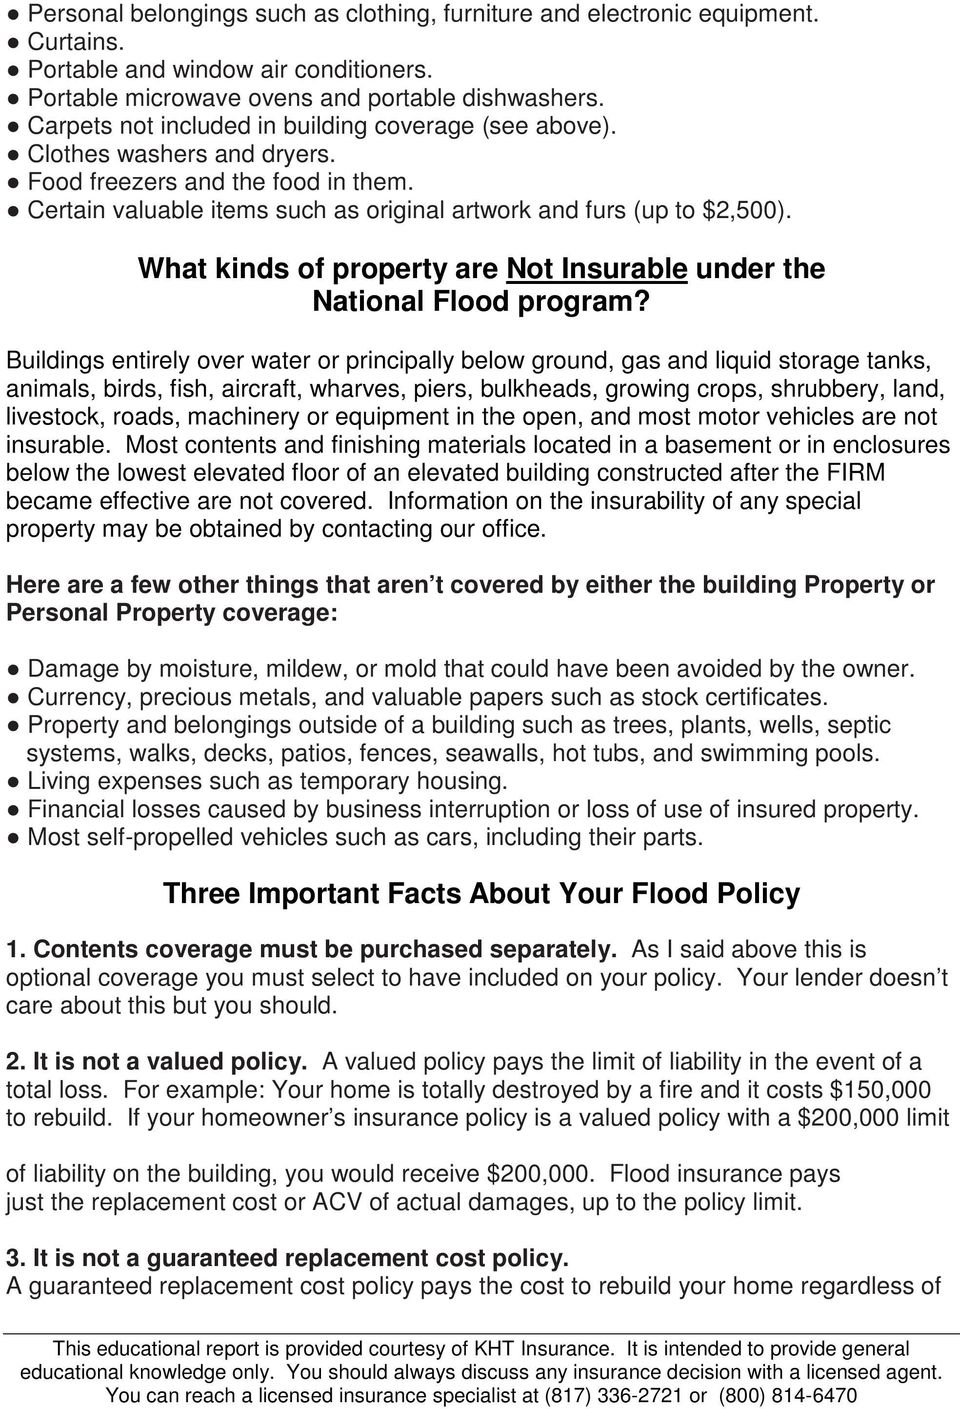 What kinds of property are Not Insurable under the National Flood program?